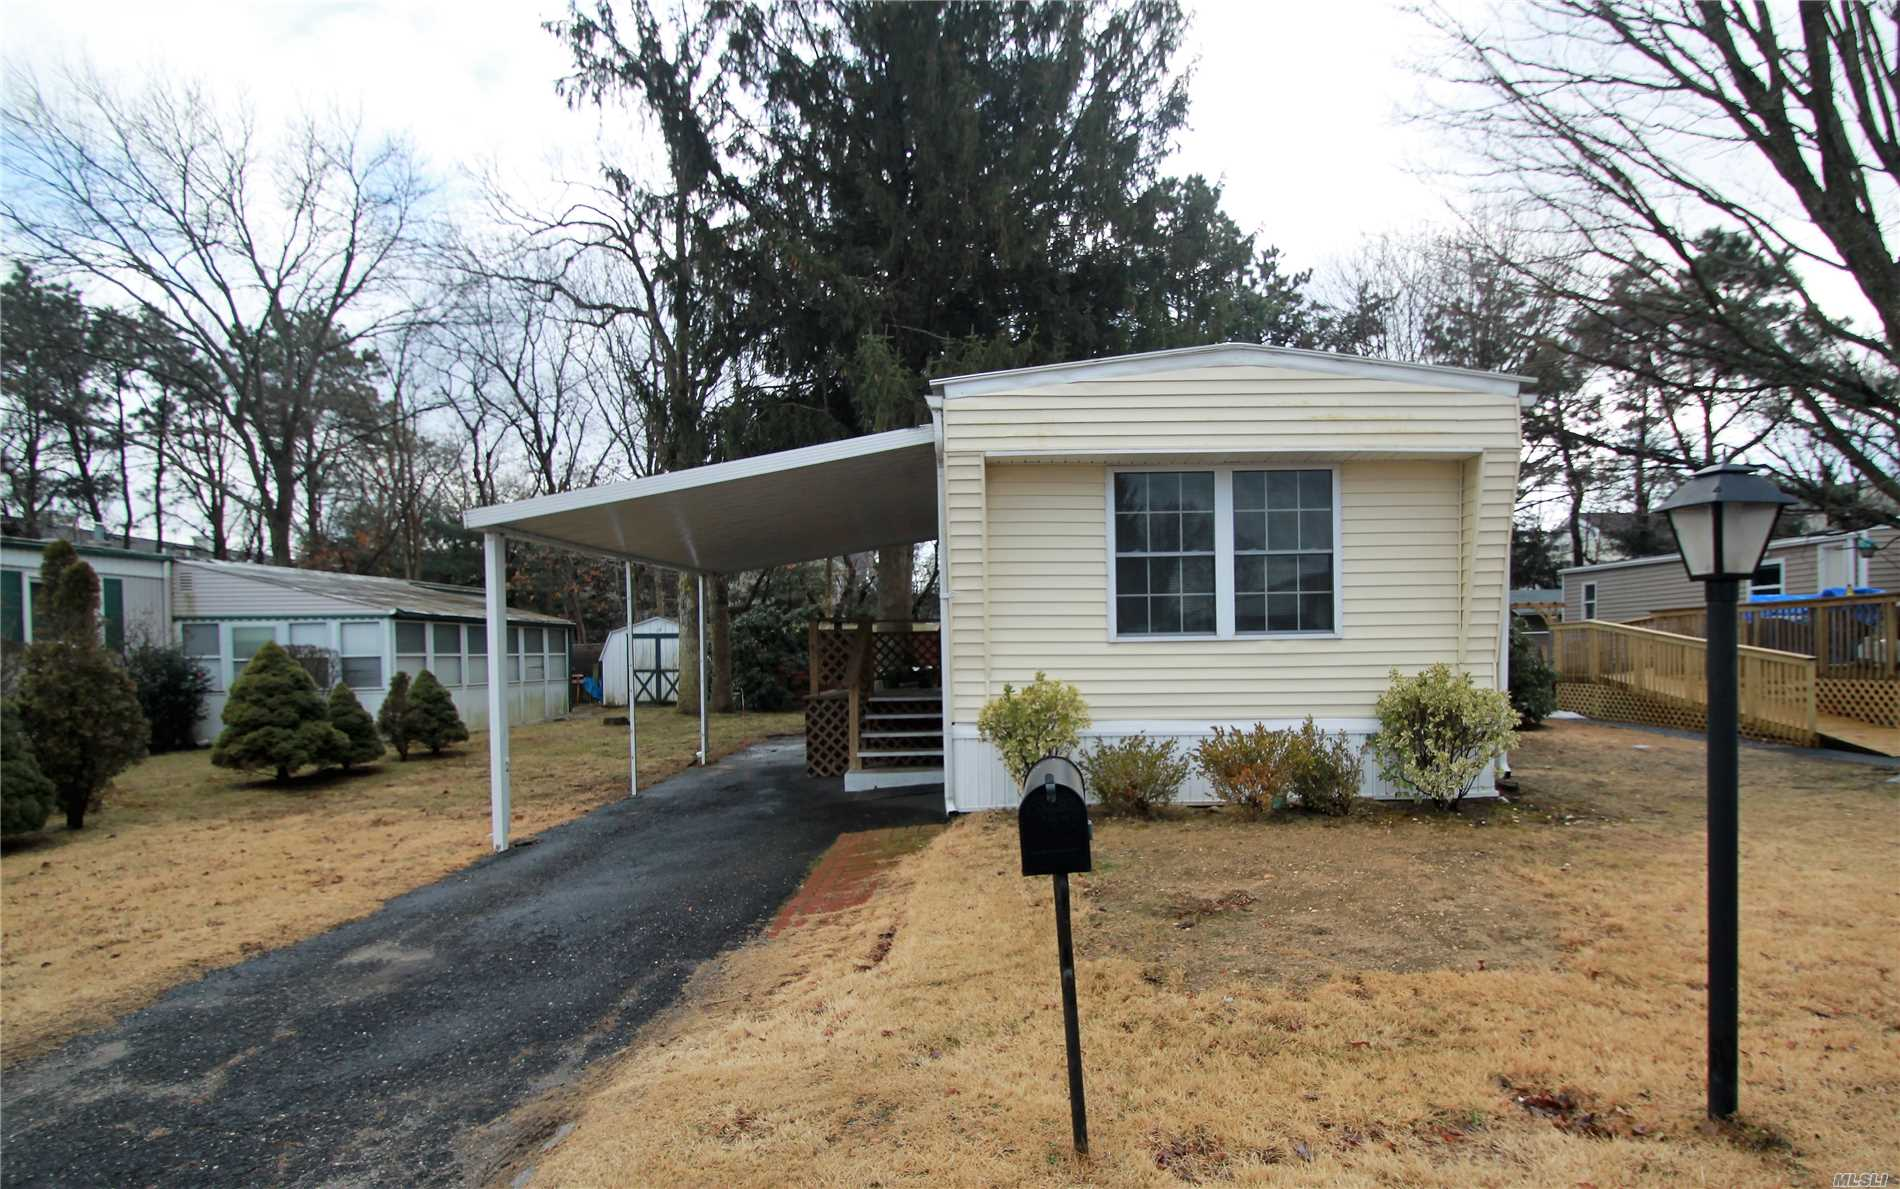 Bright, Inviting And Move-In Ready. New Roof, Insulation, Siding, Skirting In 2017. New Hw Heater In 2018. Separate 10Ft. X 15Ft. Secure Shed With Power. Enclosed Patio. All Furnishings And Household Items Included. Park Hoa (Appx $980/Month) Includes Lot Rental, Sewer, Water, Garbage Pickup, Street Snowplowing. Buyers Must Qualify For Park Residency With Good Credit Score And Income Verification Proving $3000/Mo. Income After Other Obligations. Nys Star Rebate Available To Resident Owners.